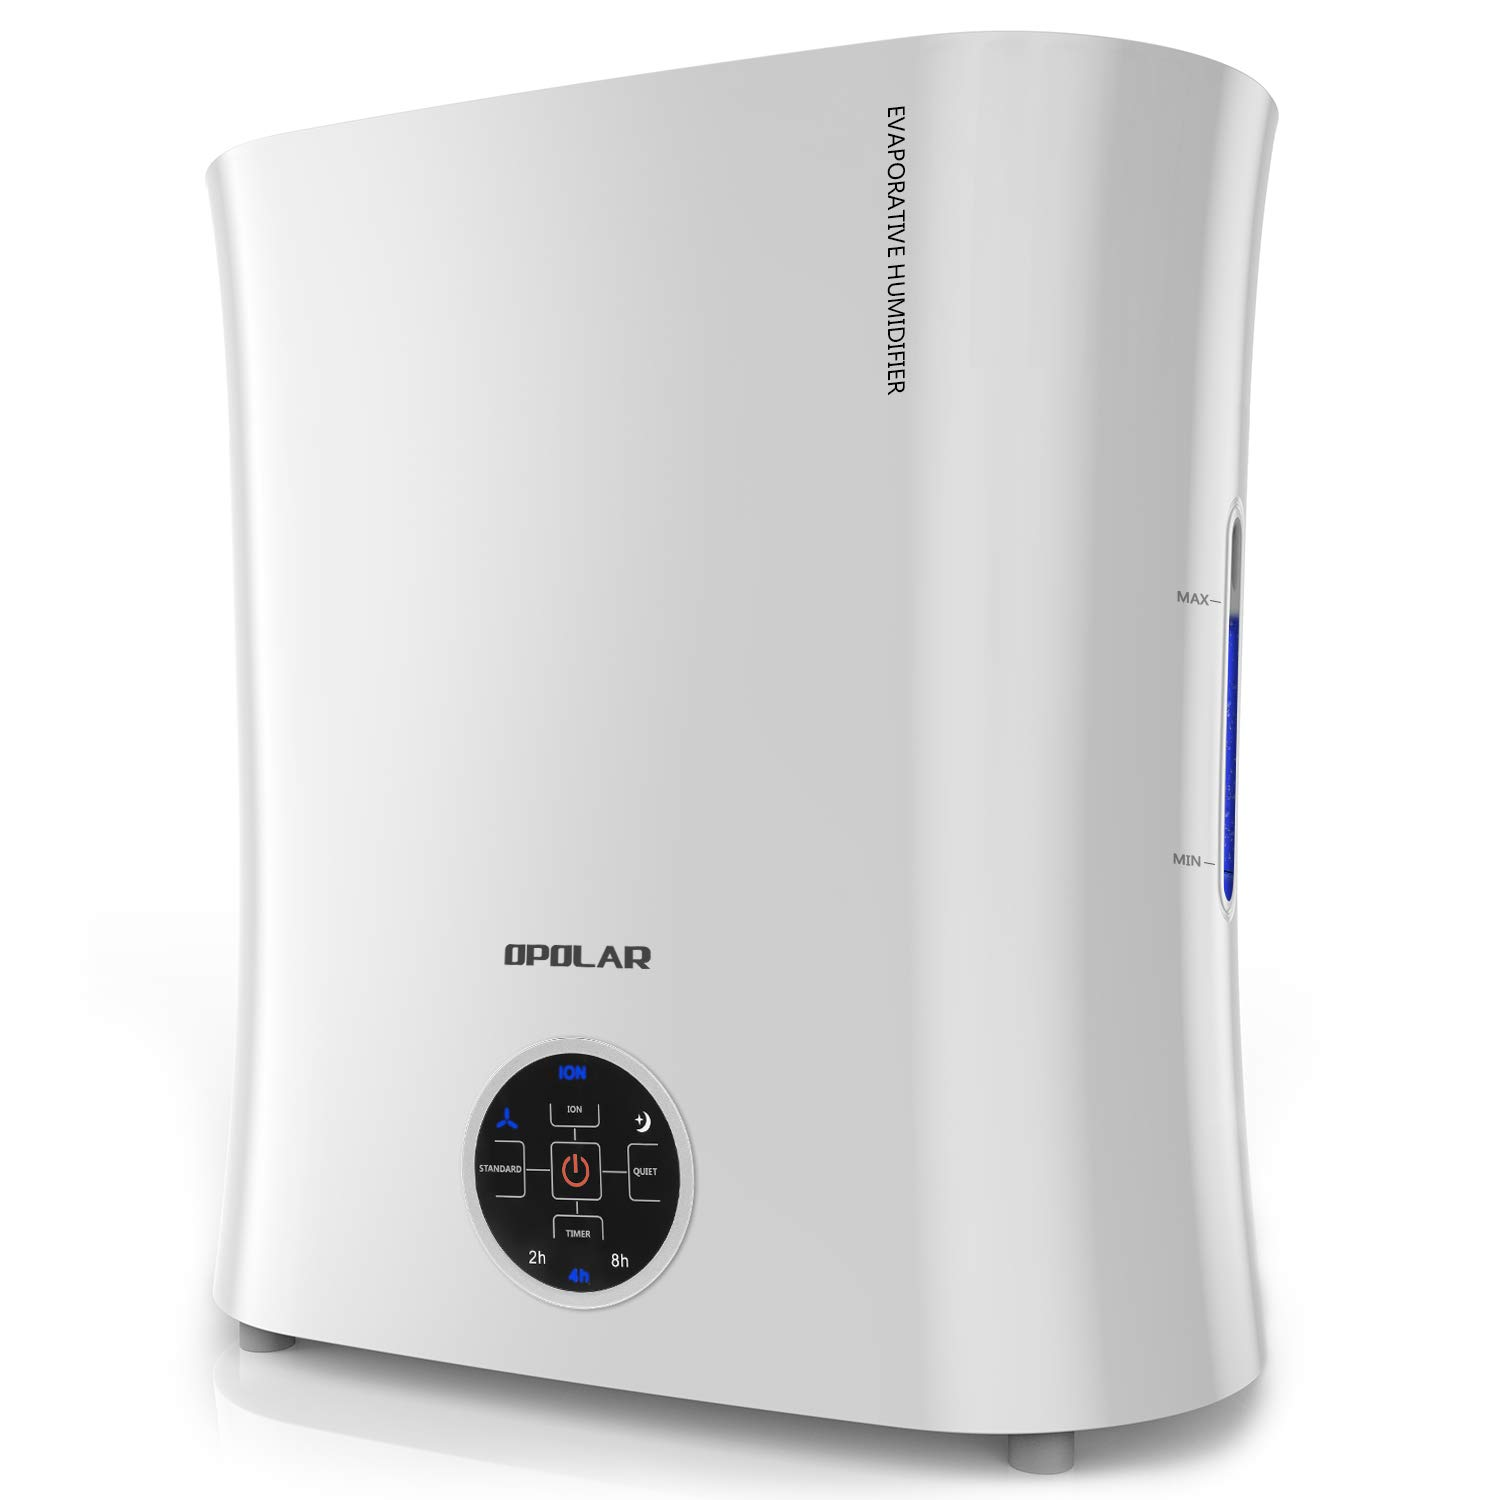 hight resolution of opolar digital evaporative best humidifier review by www snoremagazine com